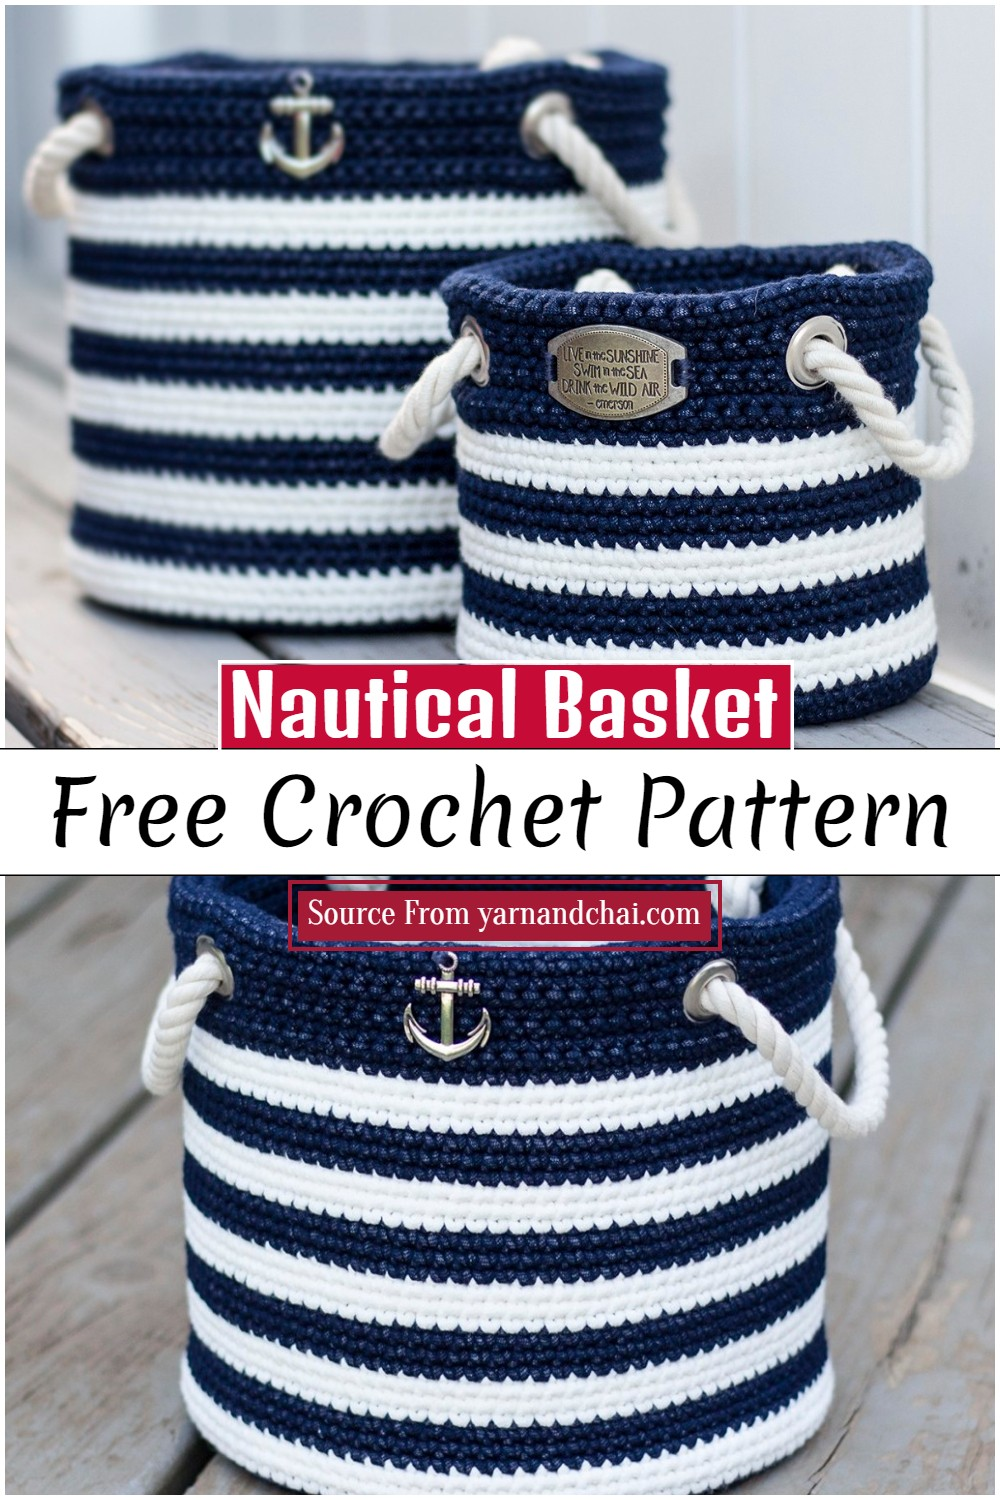 Crochet Nautical Basket Pattern